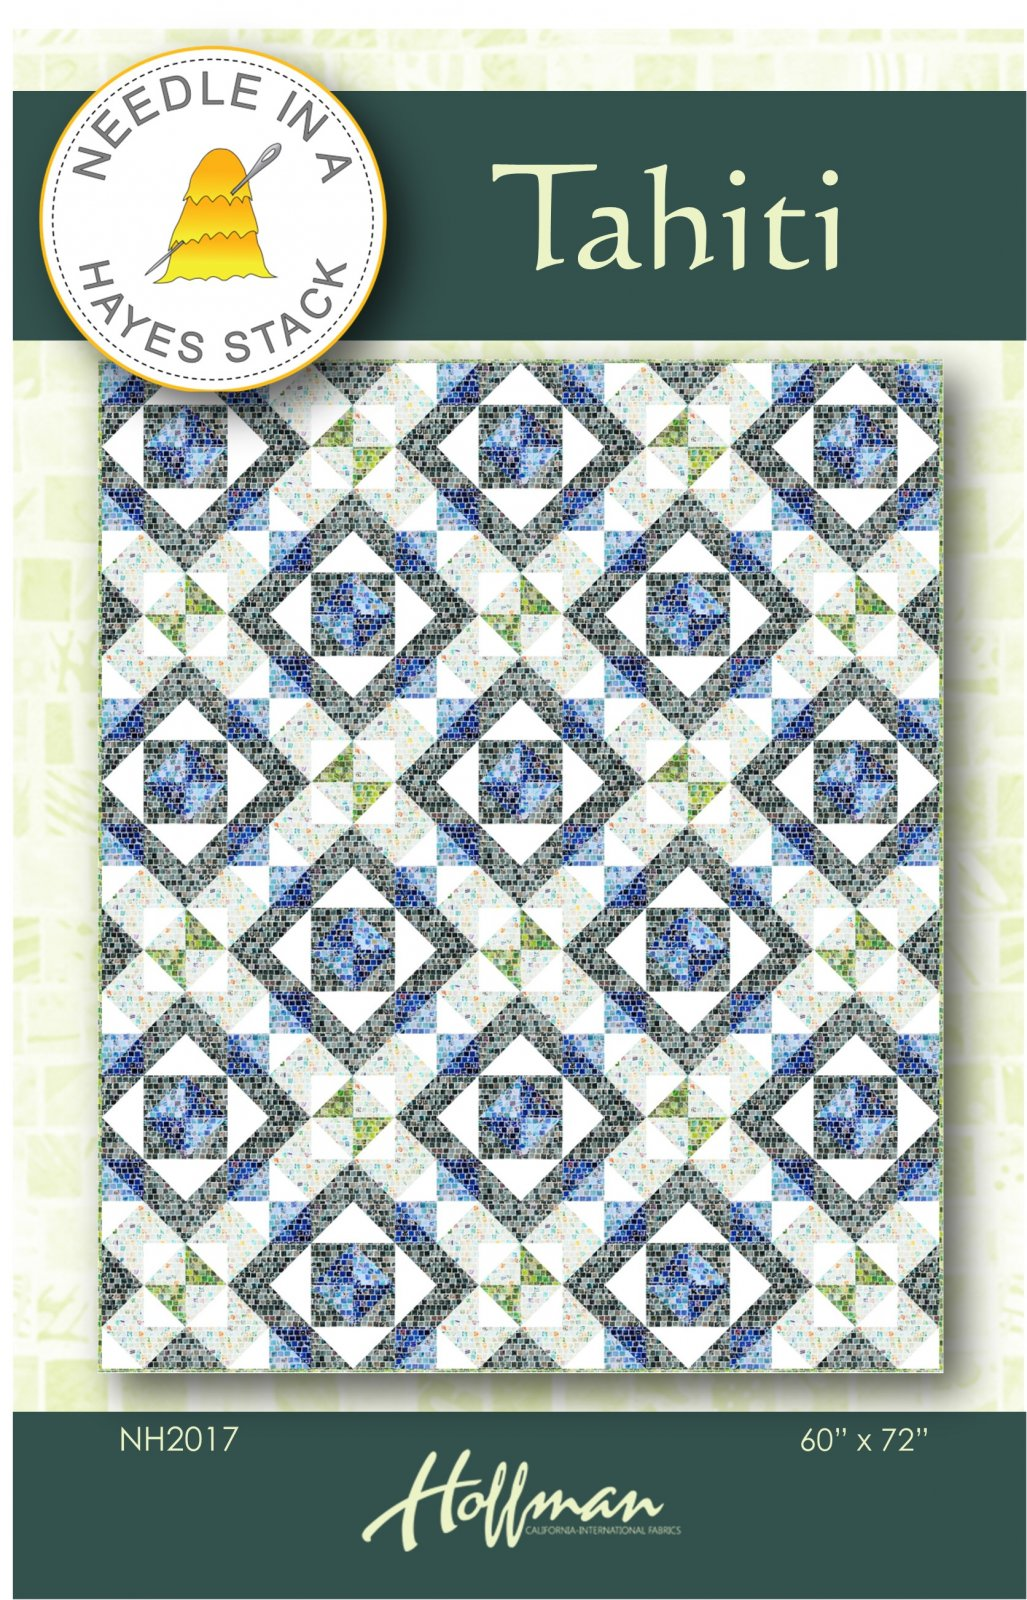 Tahiti Quilt Pattern by Needle in a Hayes Stack